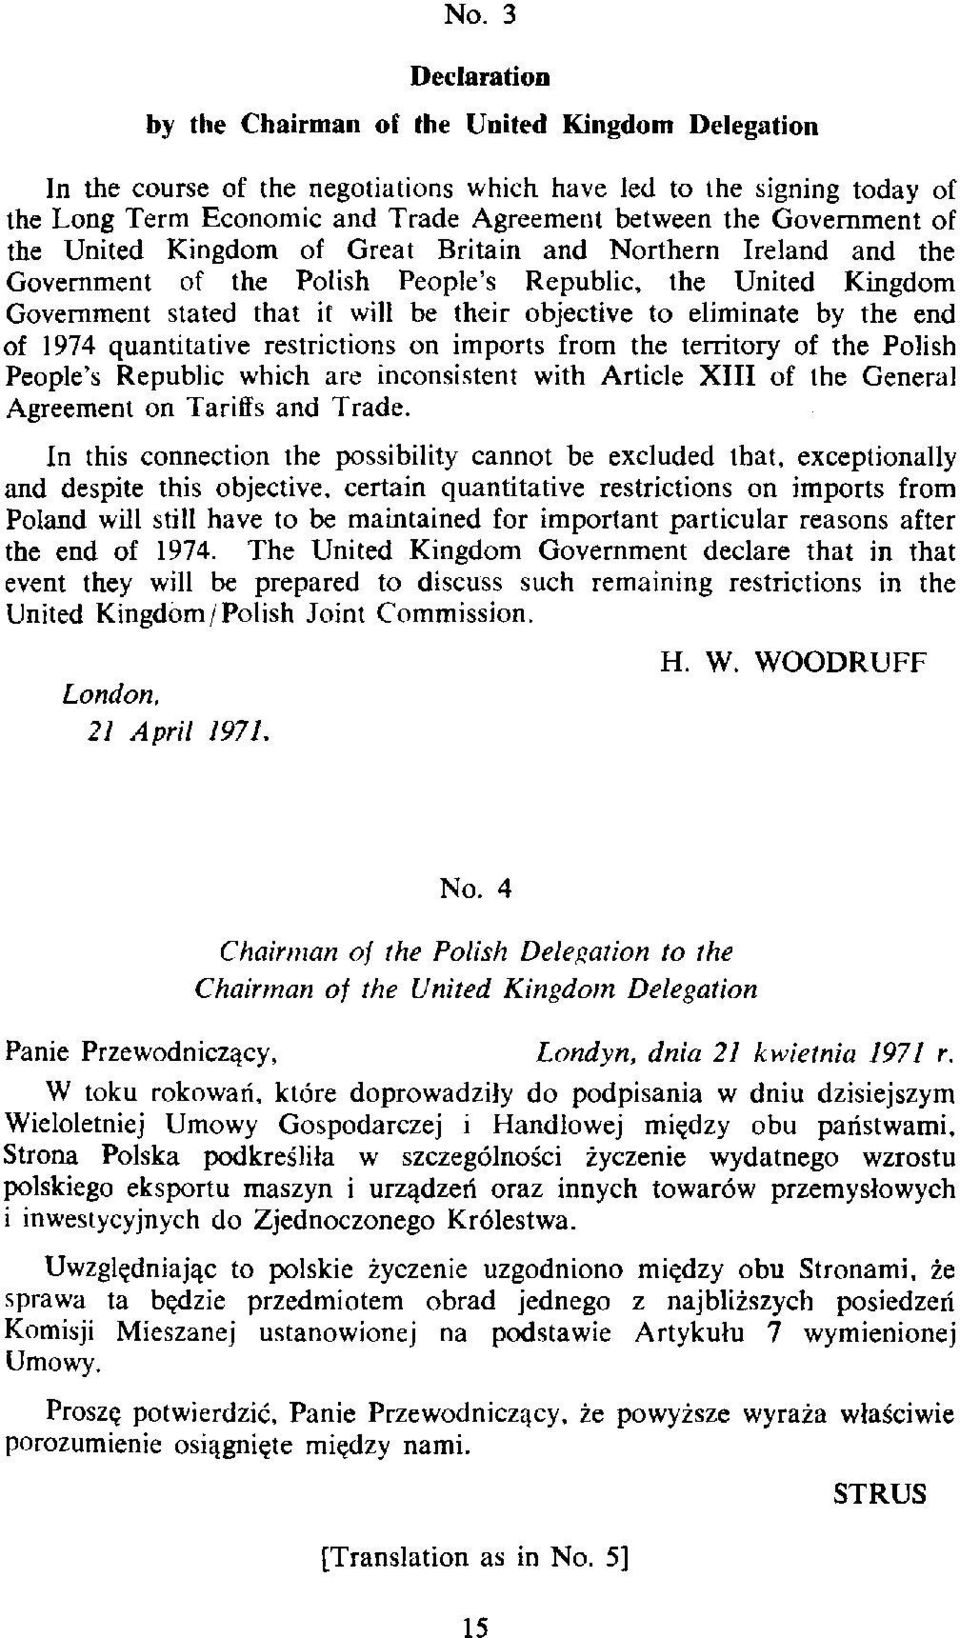 eliminate by the end of 1974 quantitative restrictions on imports from the territory of the Polish People's Republic which are inconsistent with Article XIII of the General Agreement on Tariffs and